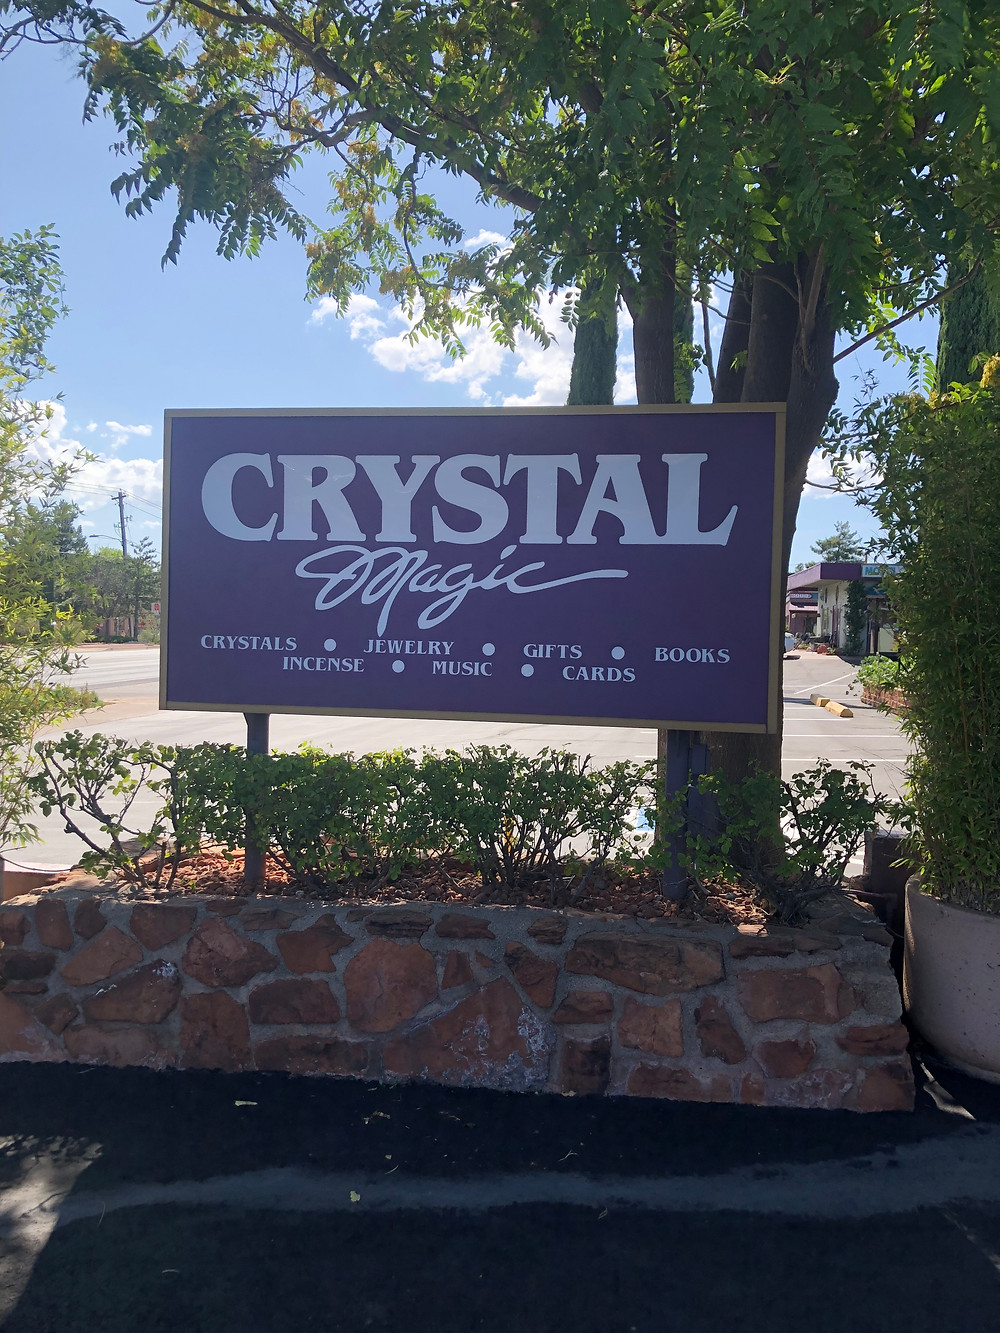 Crystal shop, Crsytal magic, crystals, jewelry, incense